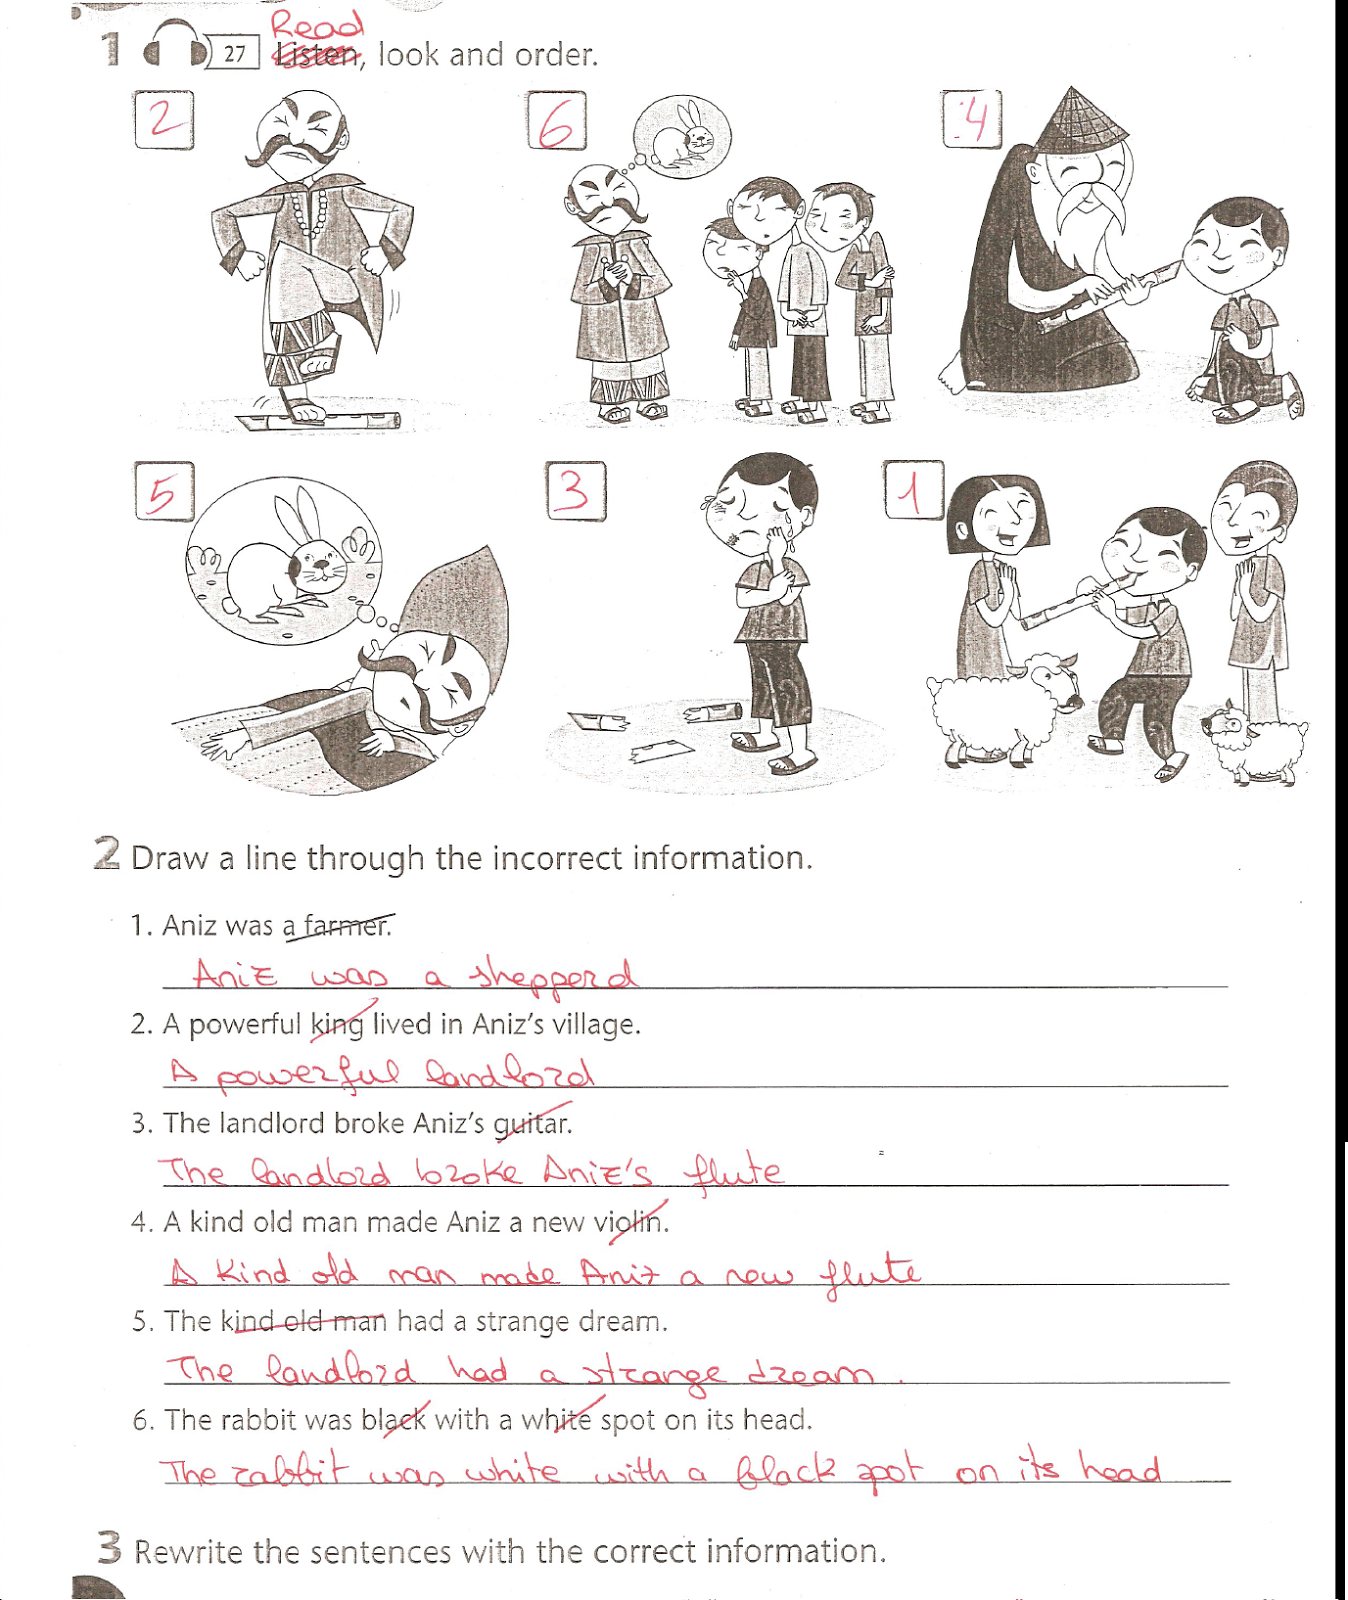 English Solutions To Worksheets For The Exam On 29th May